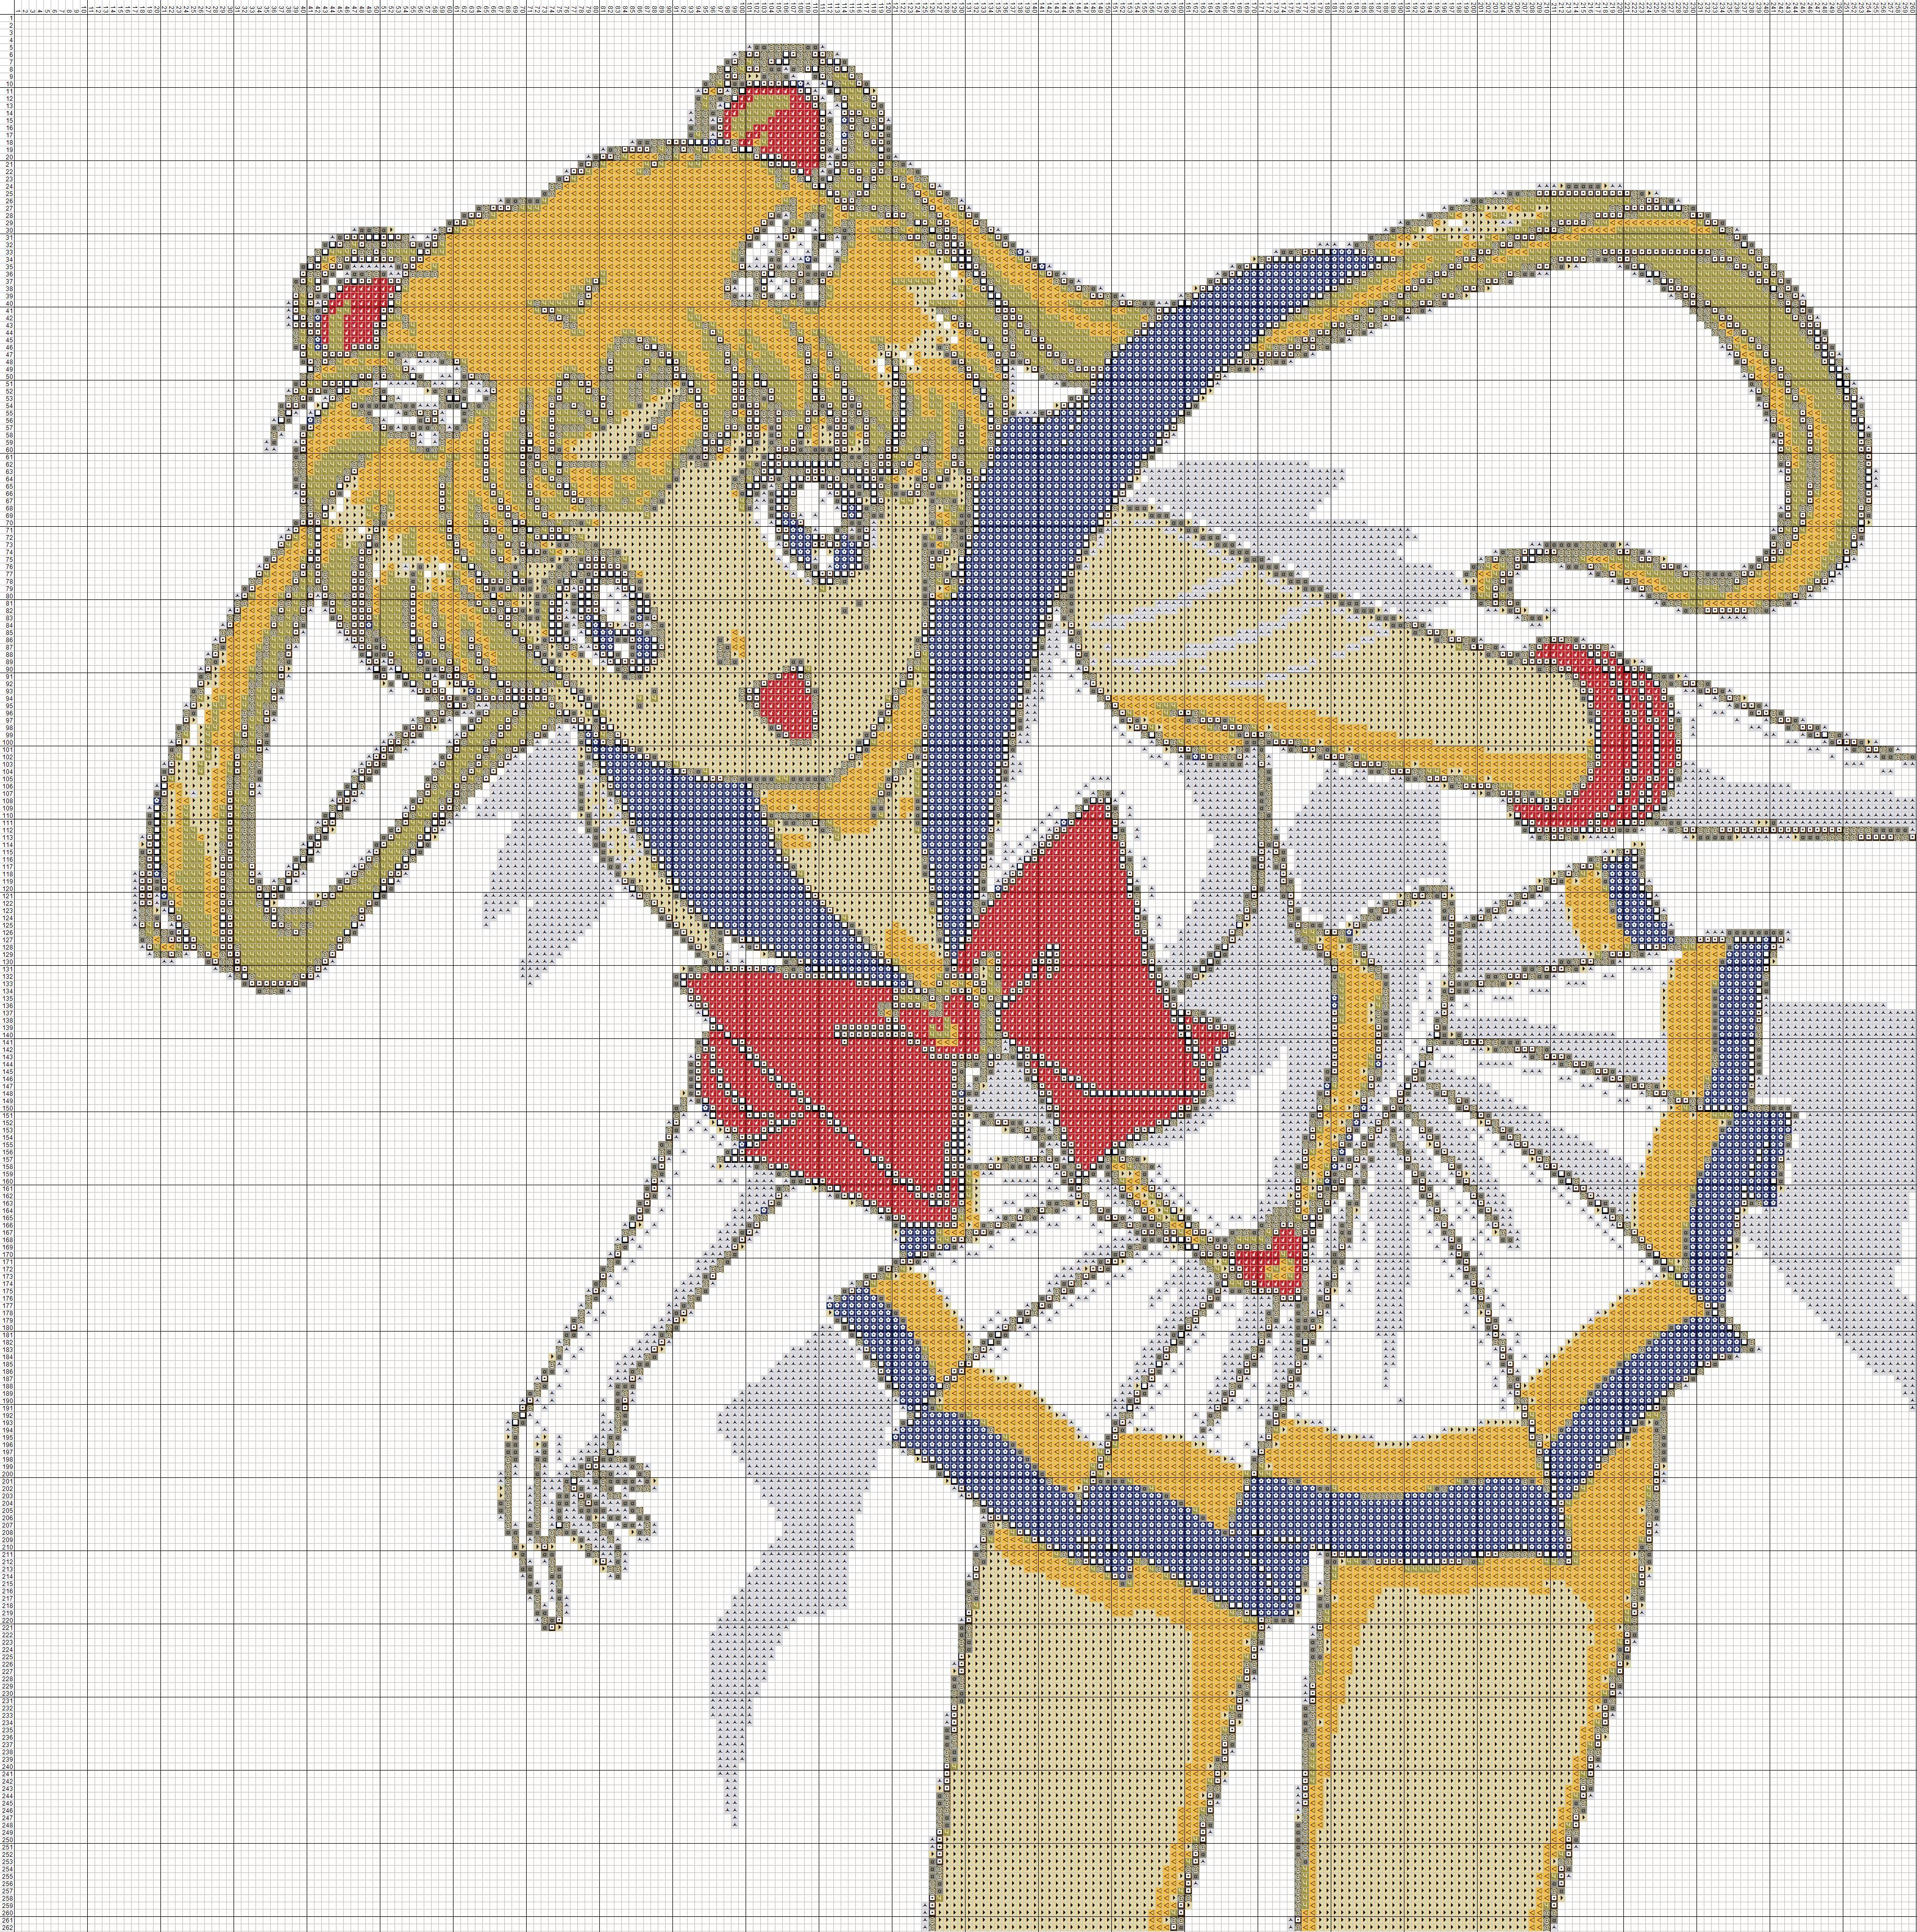 Pin By Martha Gil On Cross Stitch Dysney Figurak 3 Sailor Moon Crafts Sailor Moon Crochet Moon Cross Stitch